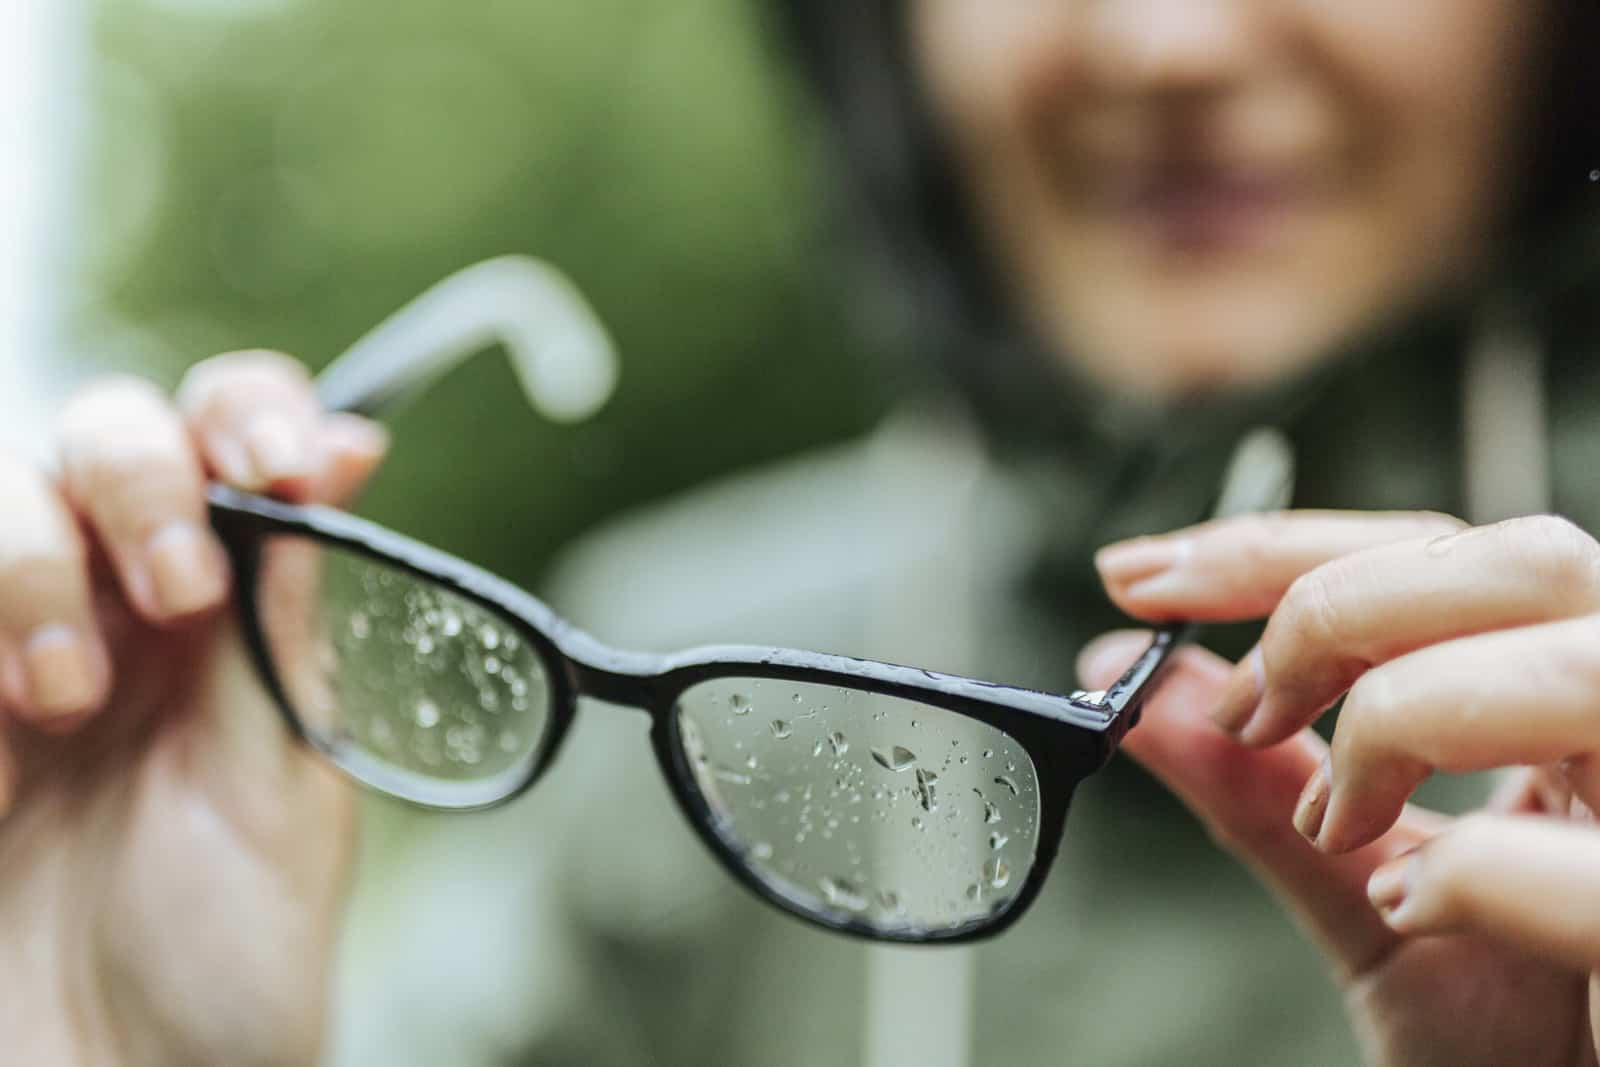 Worst And Best Ways To Clean Eyeglasses